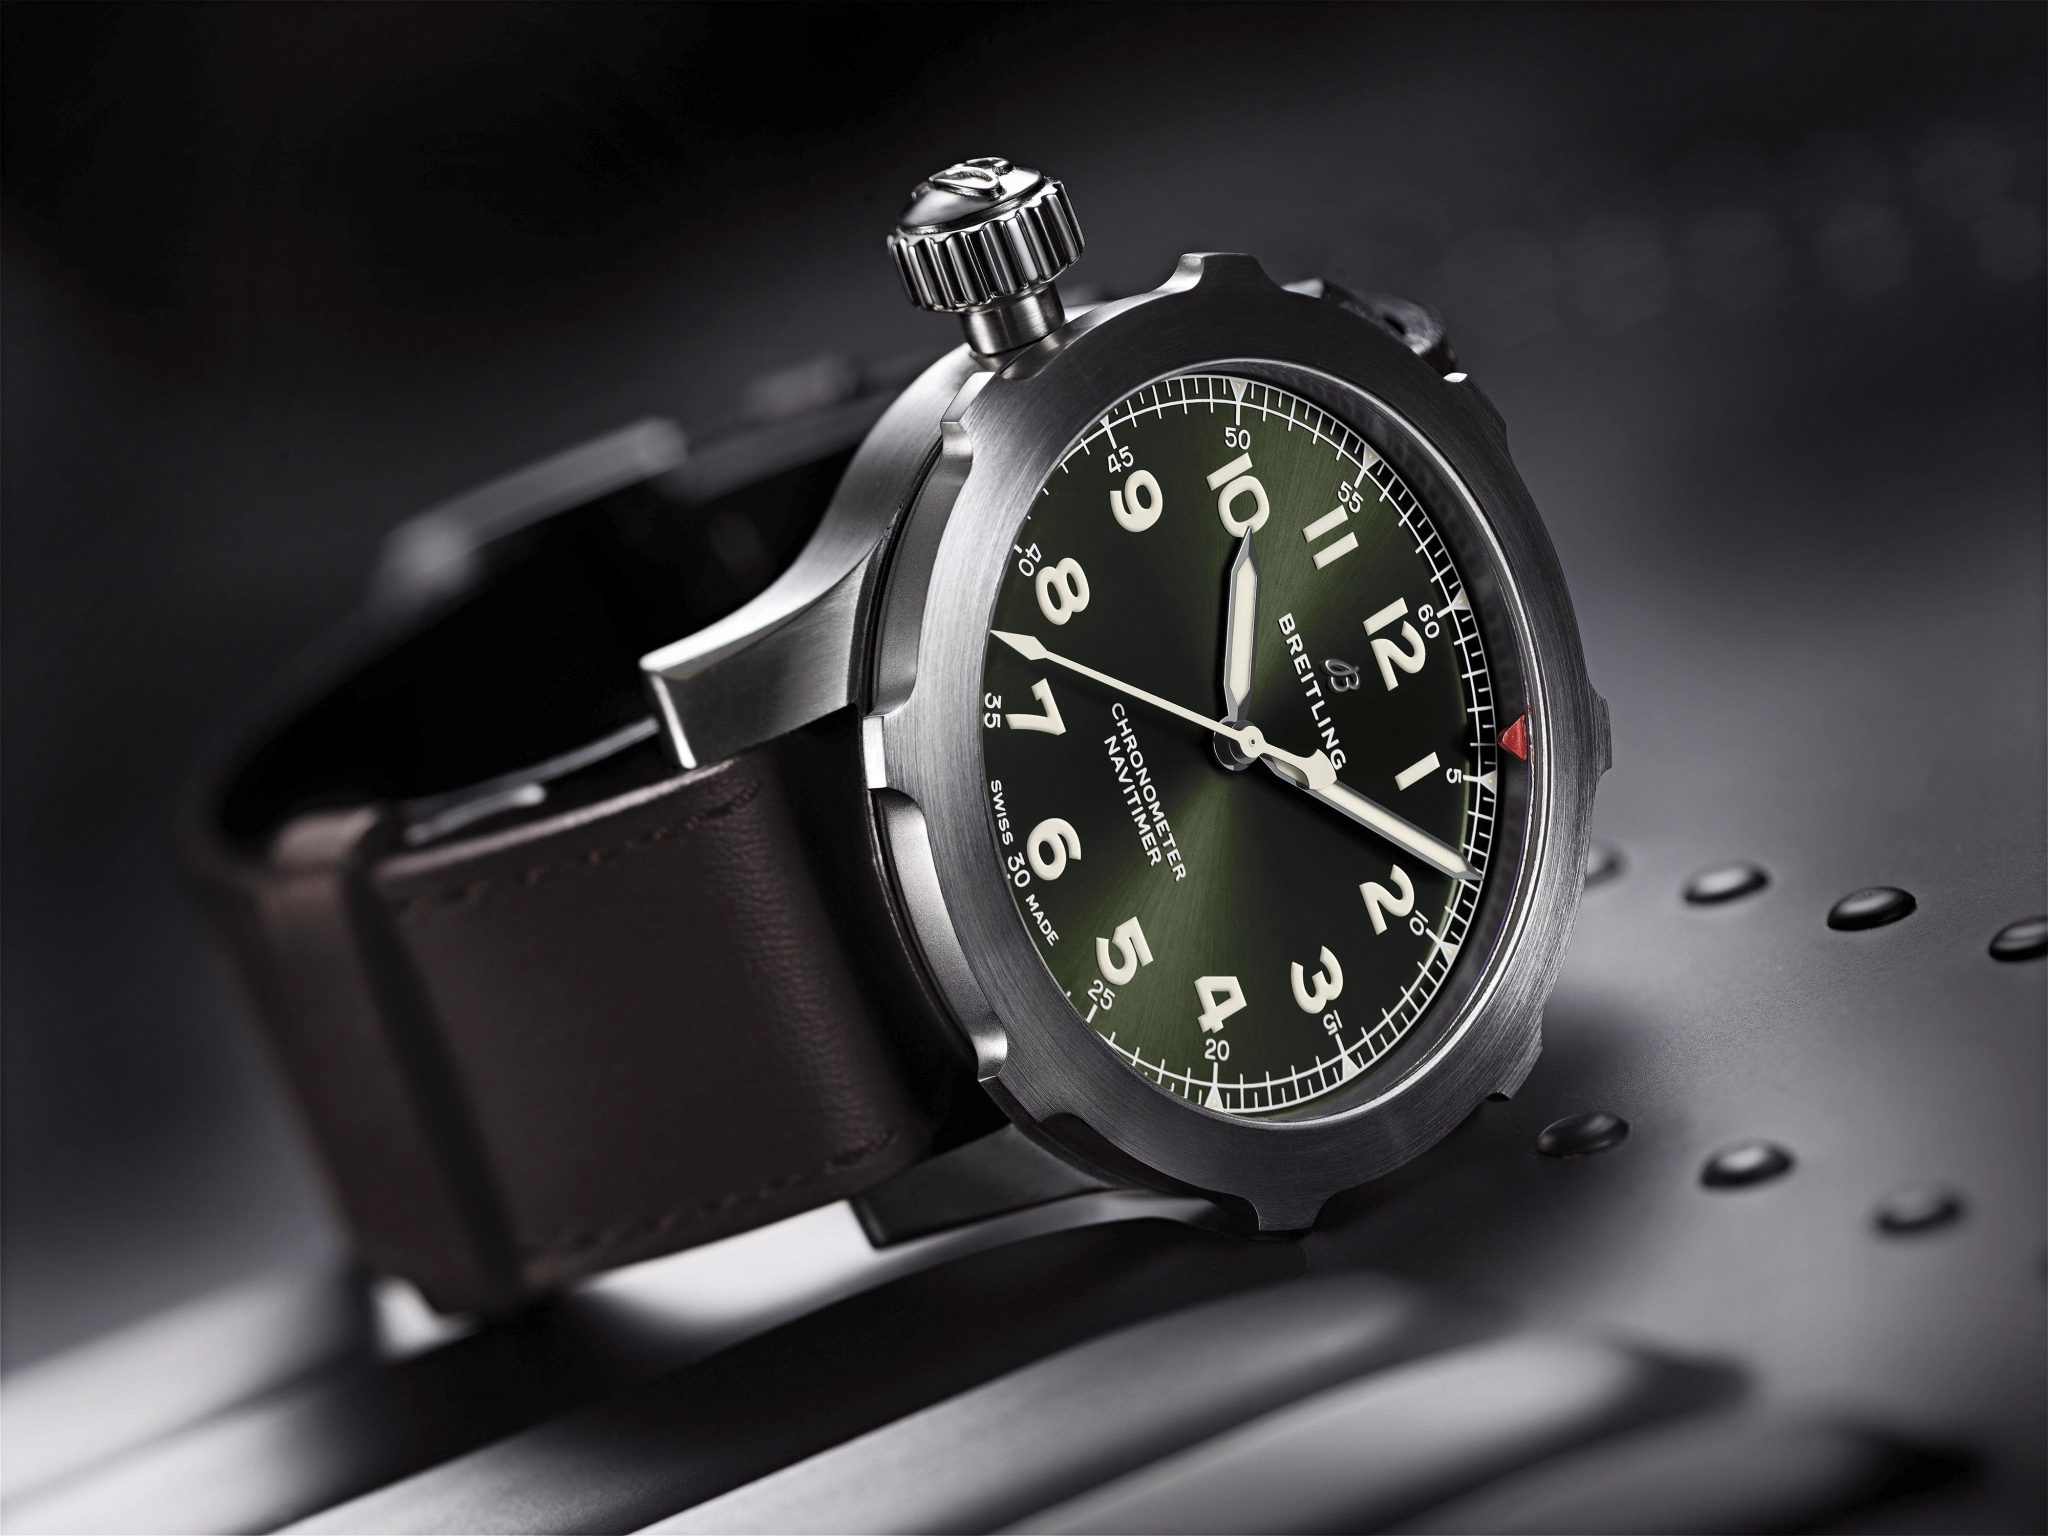 Breitling Navitimer Super 8 in titanium with Military green dial